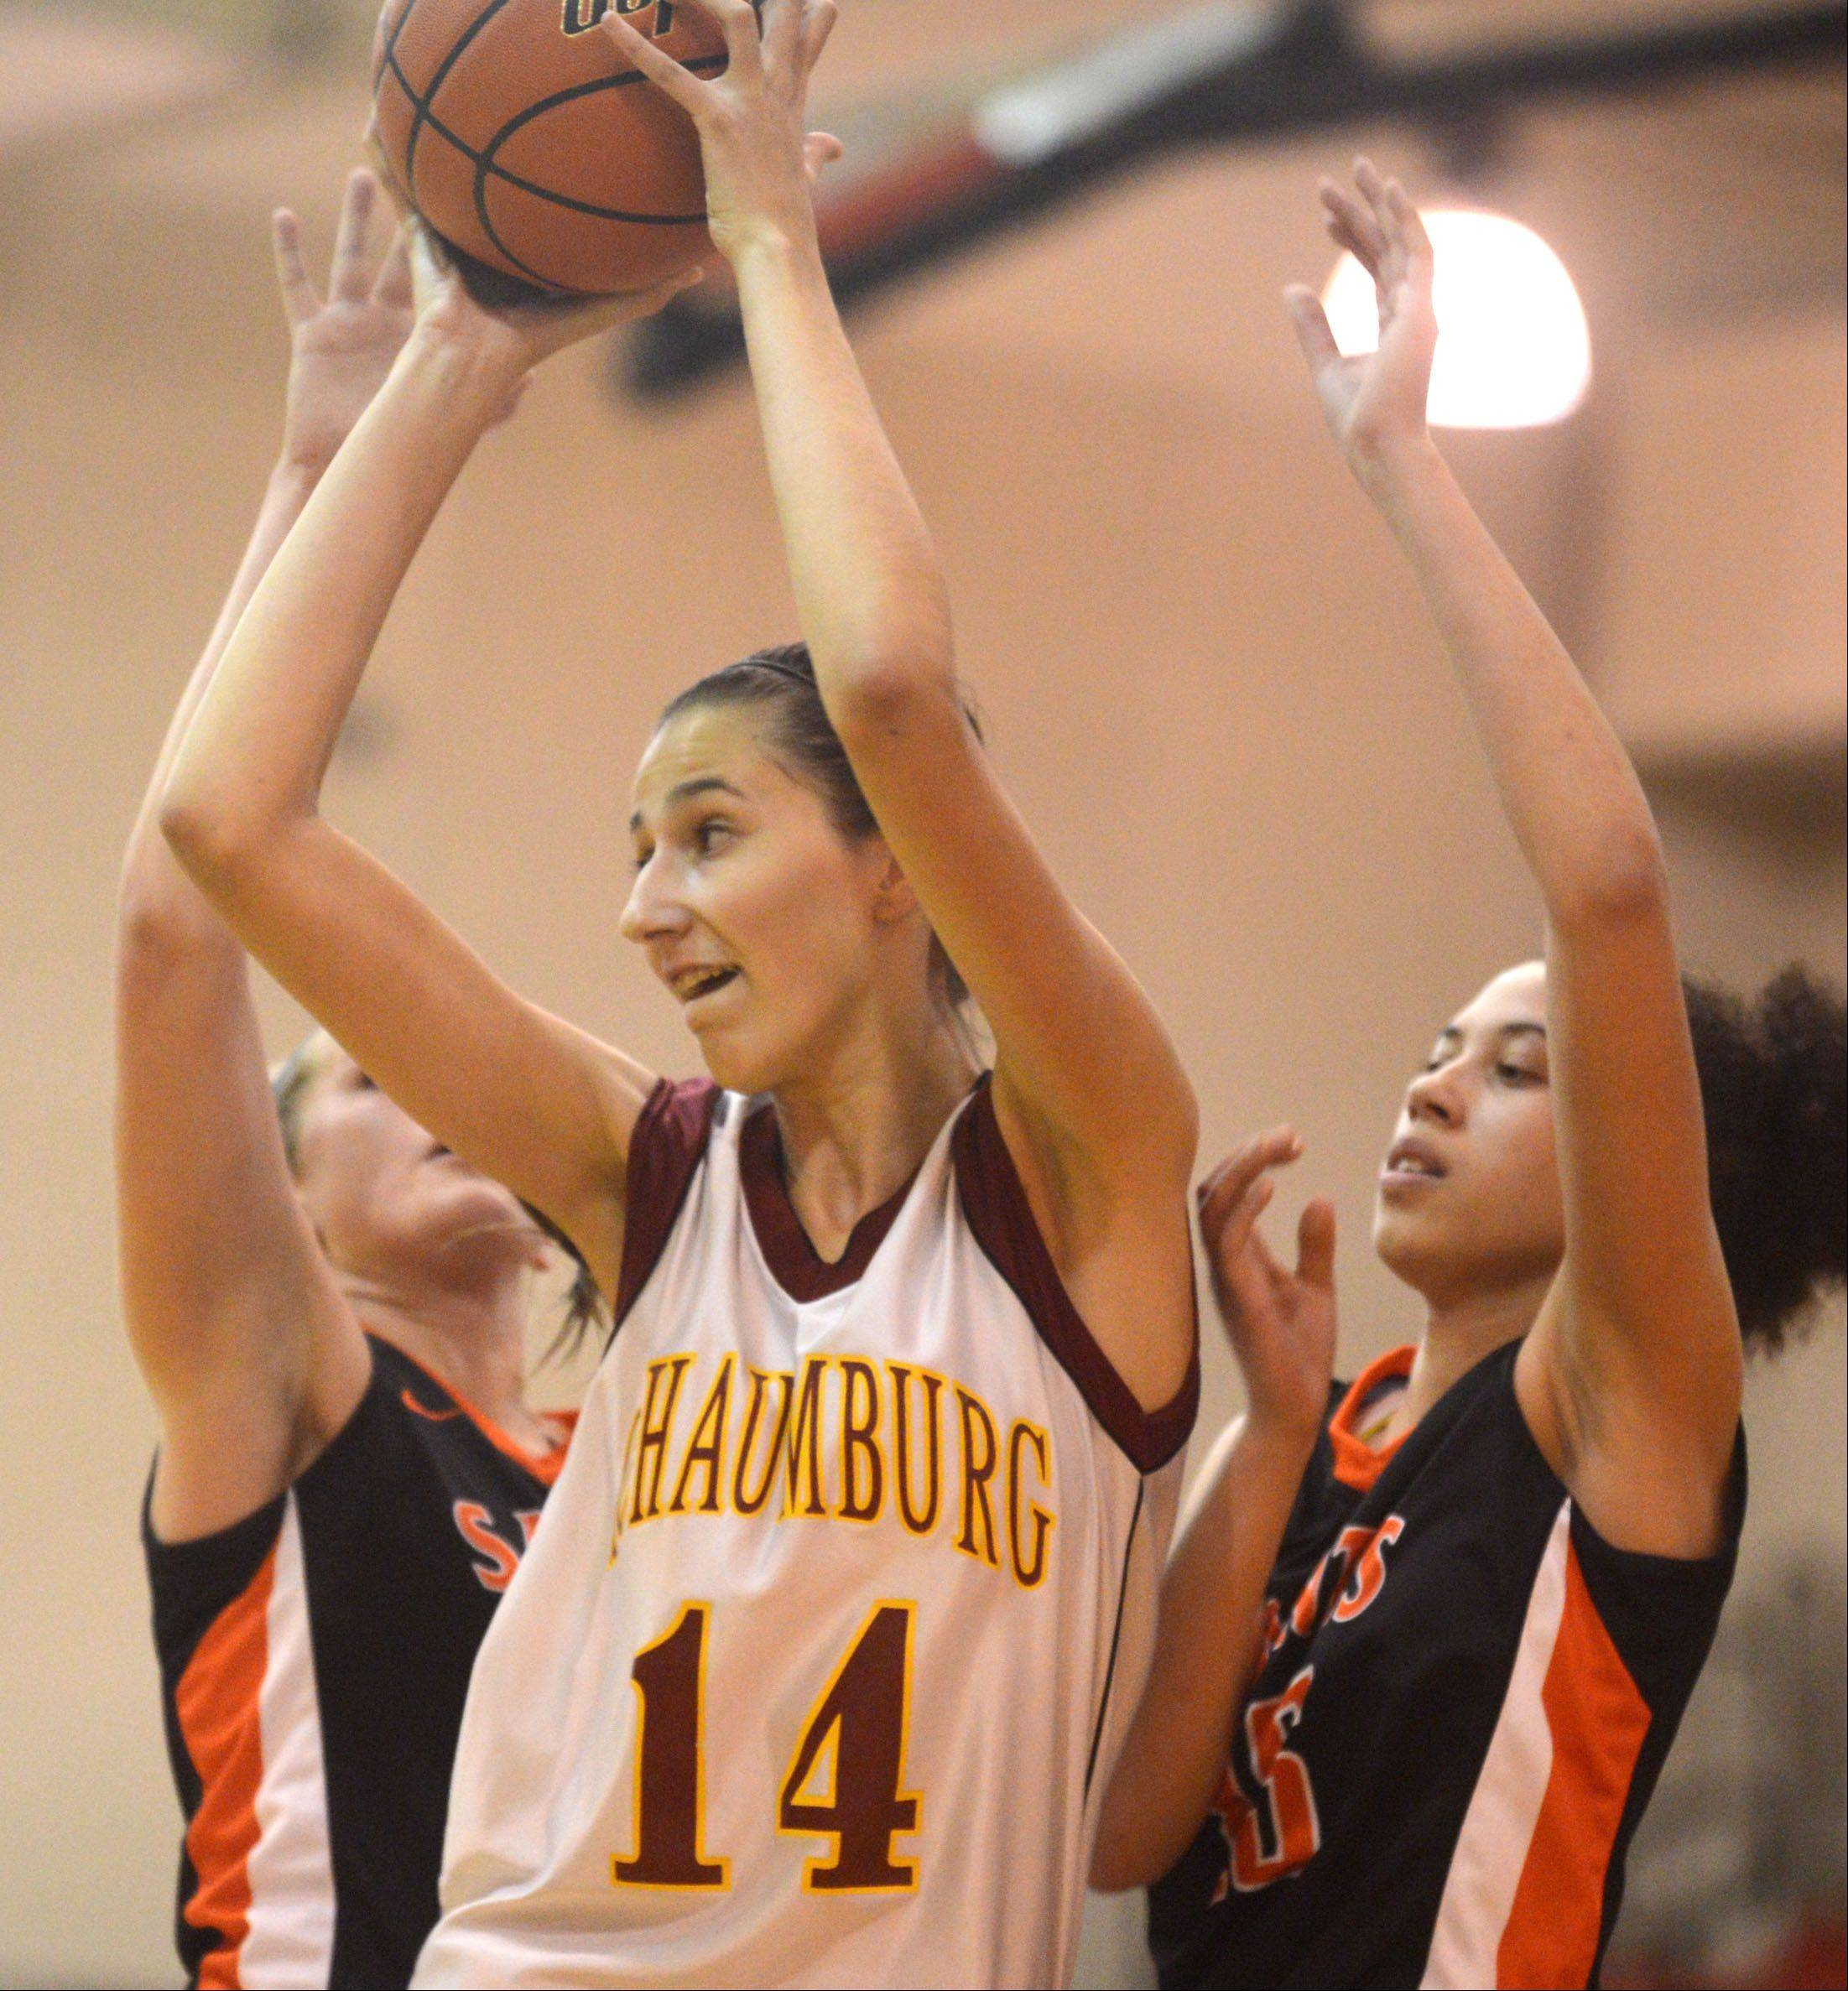 Schaumburg's Tatiana Doroskin, center, looks for a place to pass the ball against St. Charles East's Kyra Washington, right, during a varsity girls basketball game at Schaumburg High School on Monday evening.